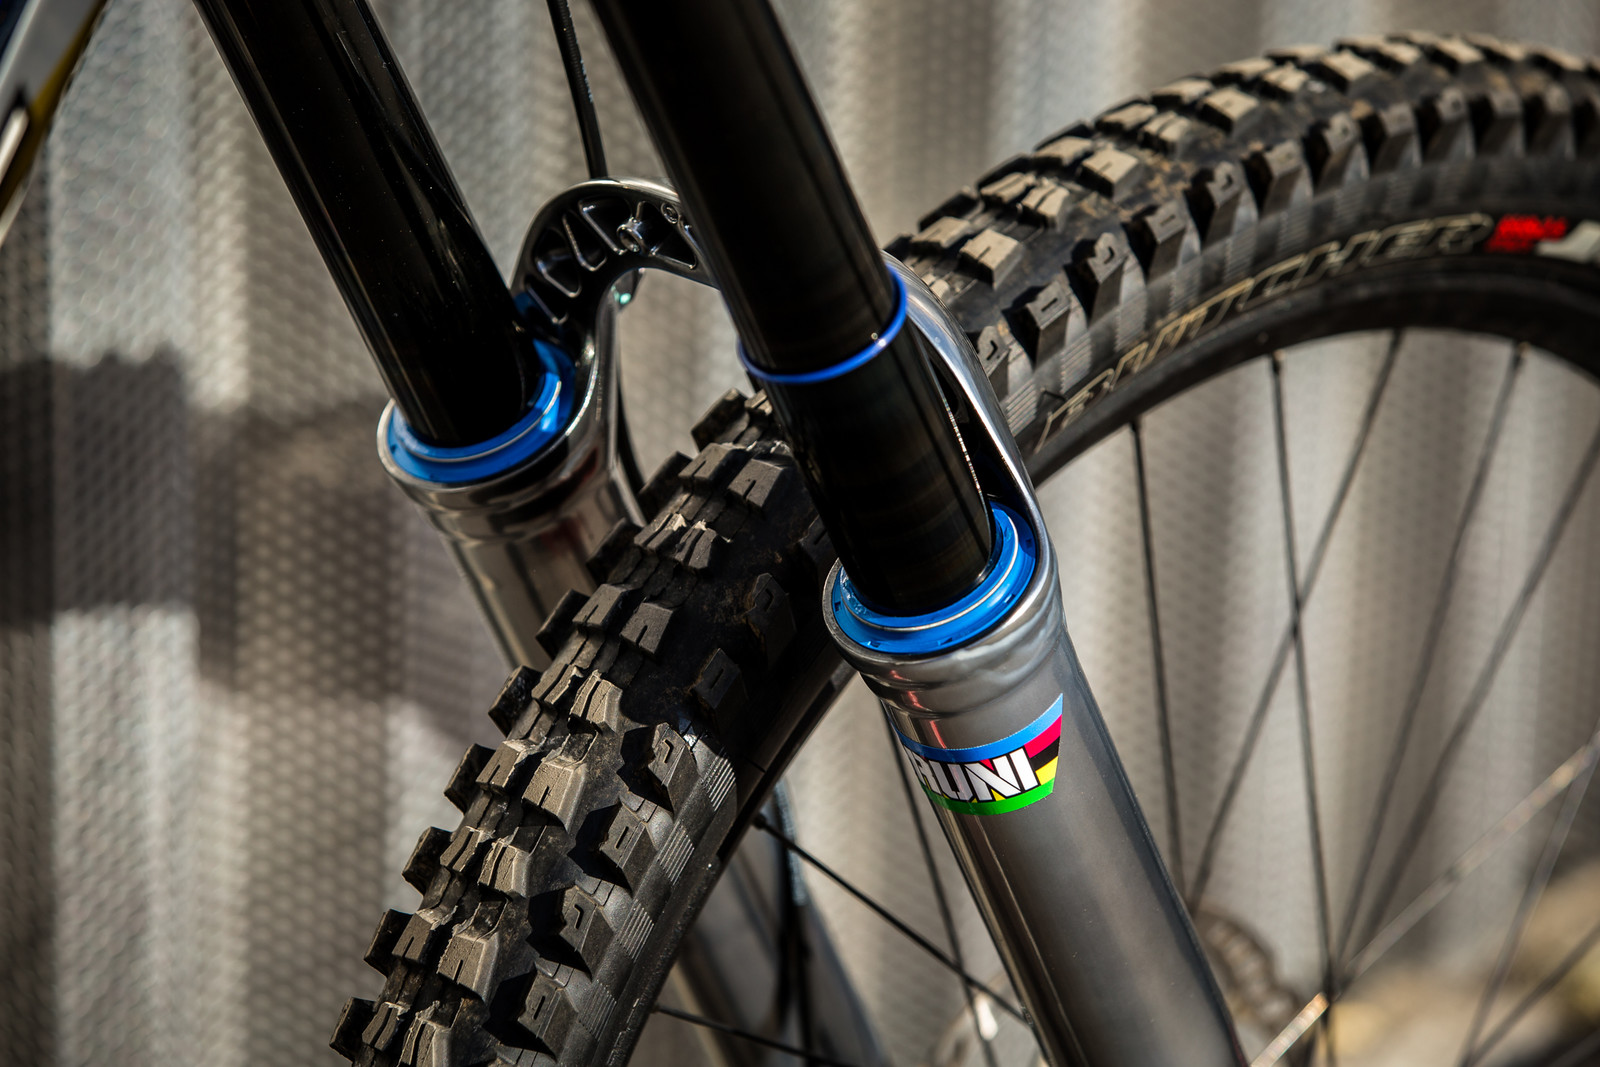 The Blue Details are Dope - WORLD CHAMPS BIKE - Loic Bruni's Specialized Demo - Mountain Biking Pictures - Vital MTB